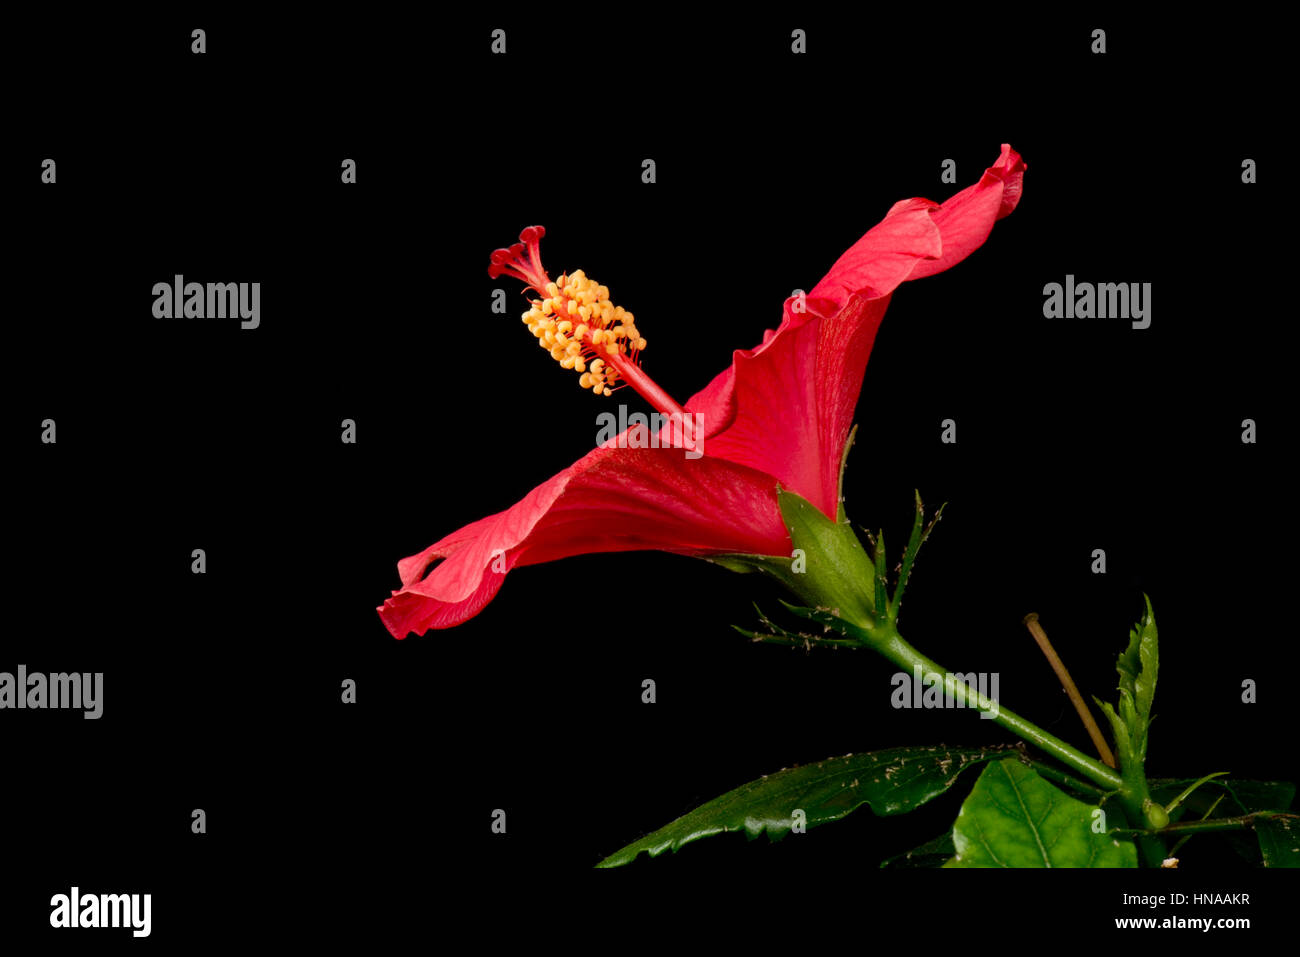 Flower bud of red hibiscus rosa sinensis sequence opening to reveal flower bud of red hibiscus rosa sinensis sequence opening to reveal anthers stigma style and other reproductive parts izmirmasajfo